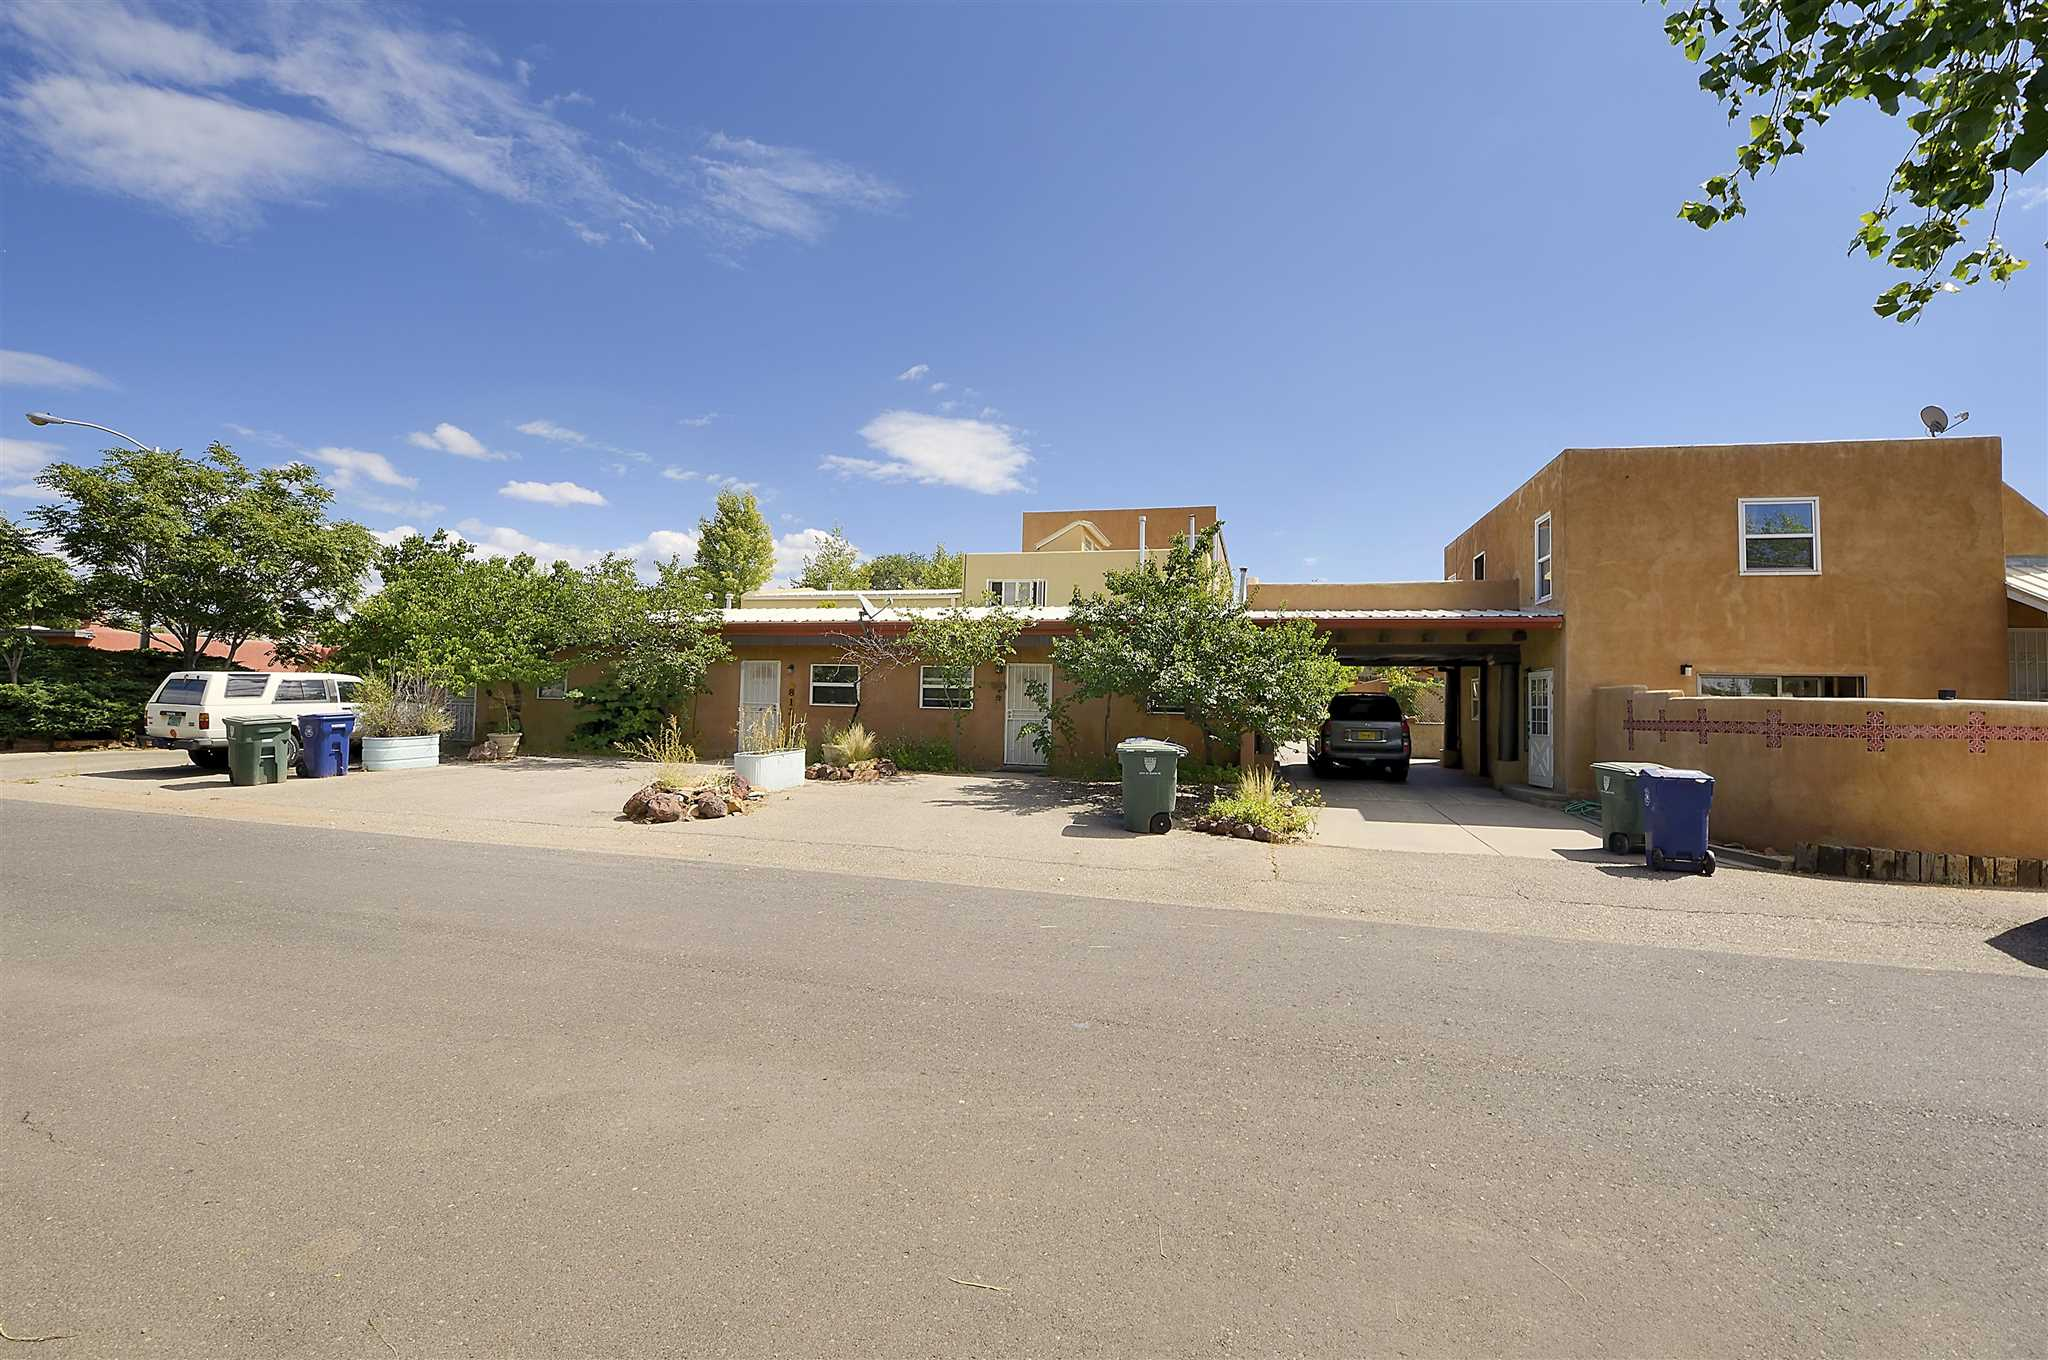 Great investment opportunity for rentals located near the heart of Santa Fe. Part of an 8-unit condo association, this offering is comprised of 5 units, four of the units are single story, and one is a two story unit. The 2-story unit has 2 bedrooms and 1 bathroom, laminate and tile flooring and hot water baseboard heat. Both bedrooms and the full bathroom are upstairs. The main bedroom, with a large cedar- lined closet, has access to roof top deck with views of the mountains in the distance. The kitchen has electric cooking and off the kitchen is the laundry room. The other 2-bedroom unit has 2 bathrooms, cozy stone fireplace, covered portal with enclosed courtyard. The remaining 3 units are all 1 bedroom and 1 bathroom, with tiled floors and back splashes, stacked washer/dryer, gas cooking, and forced air heating. All of the units feature tub and shower combos with tiled walls in all of the bathroom, an enclosed small yard, and a generous amount of off- street parking. This property is centrally located near shopping and restaurants, and less that 3 miles to the Santa Fe Plaza, the Santa Fe Children's Museum, and the South Capitol station.